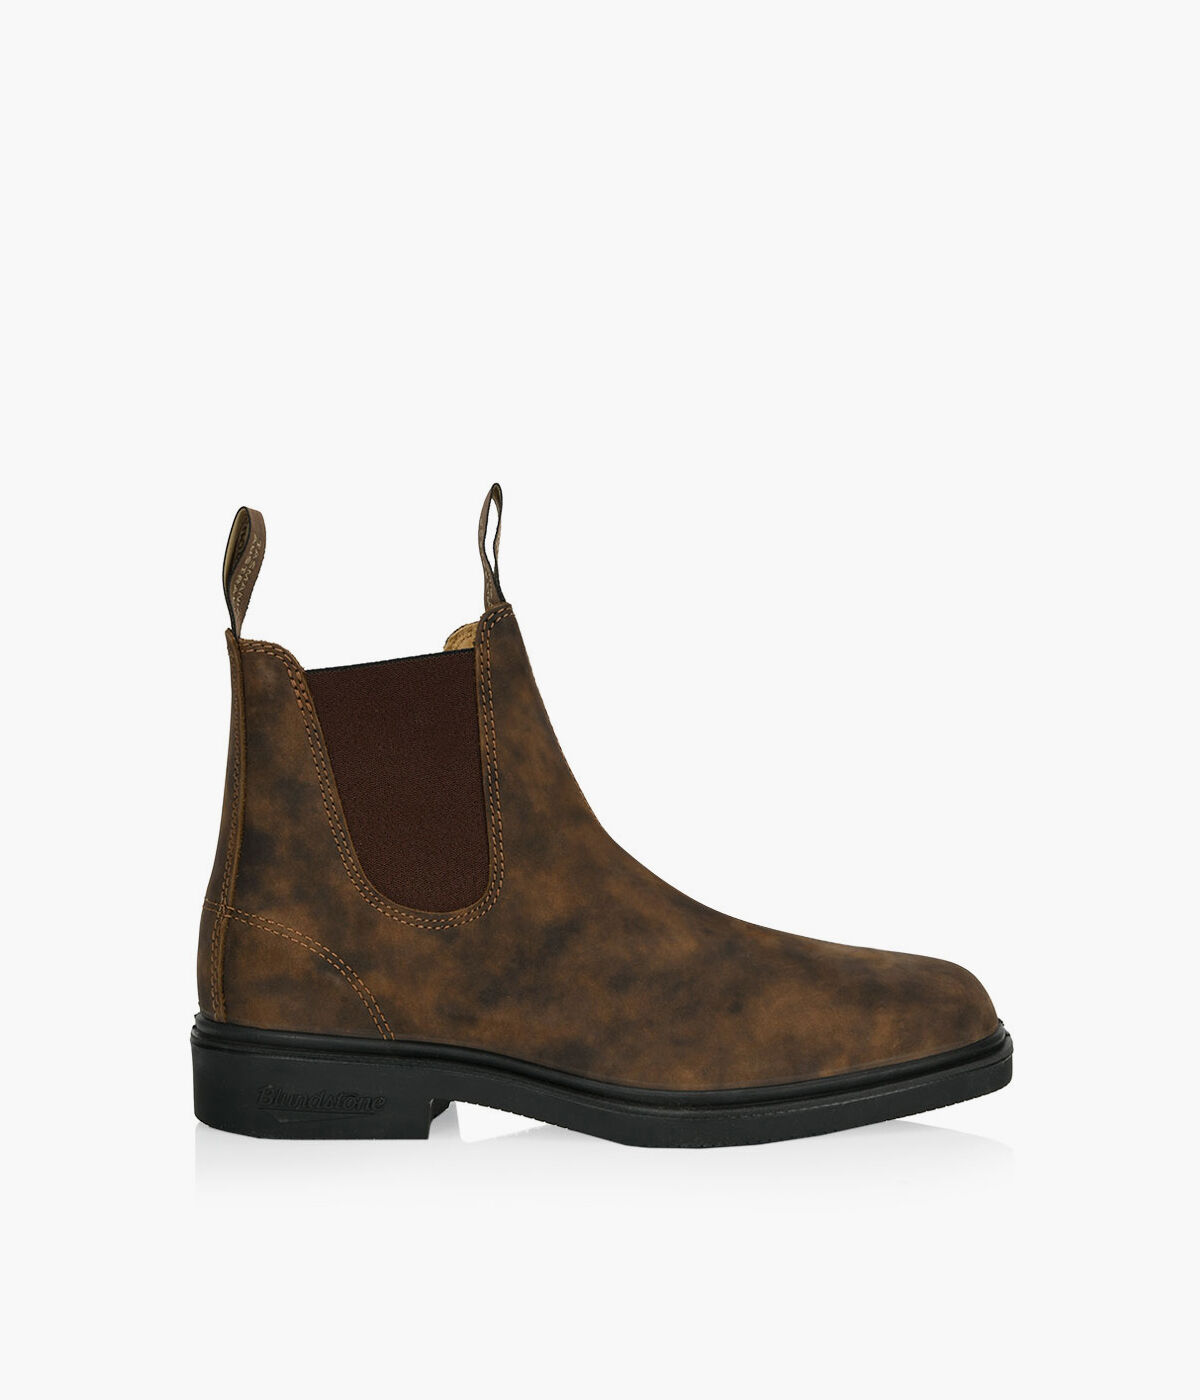 BLUNDSTONE CHISEL TOE - Leather